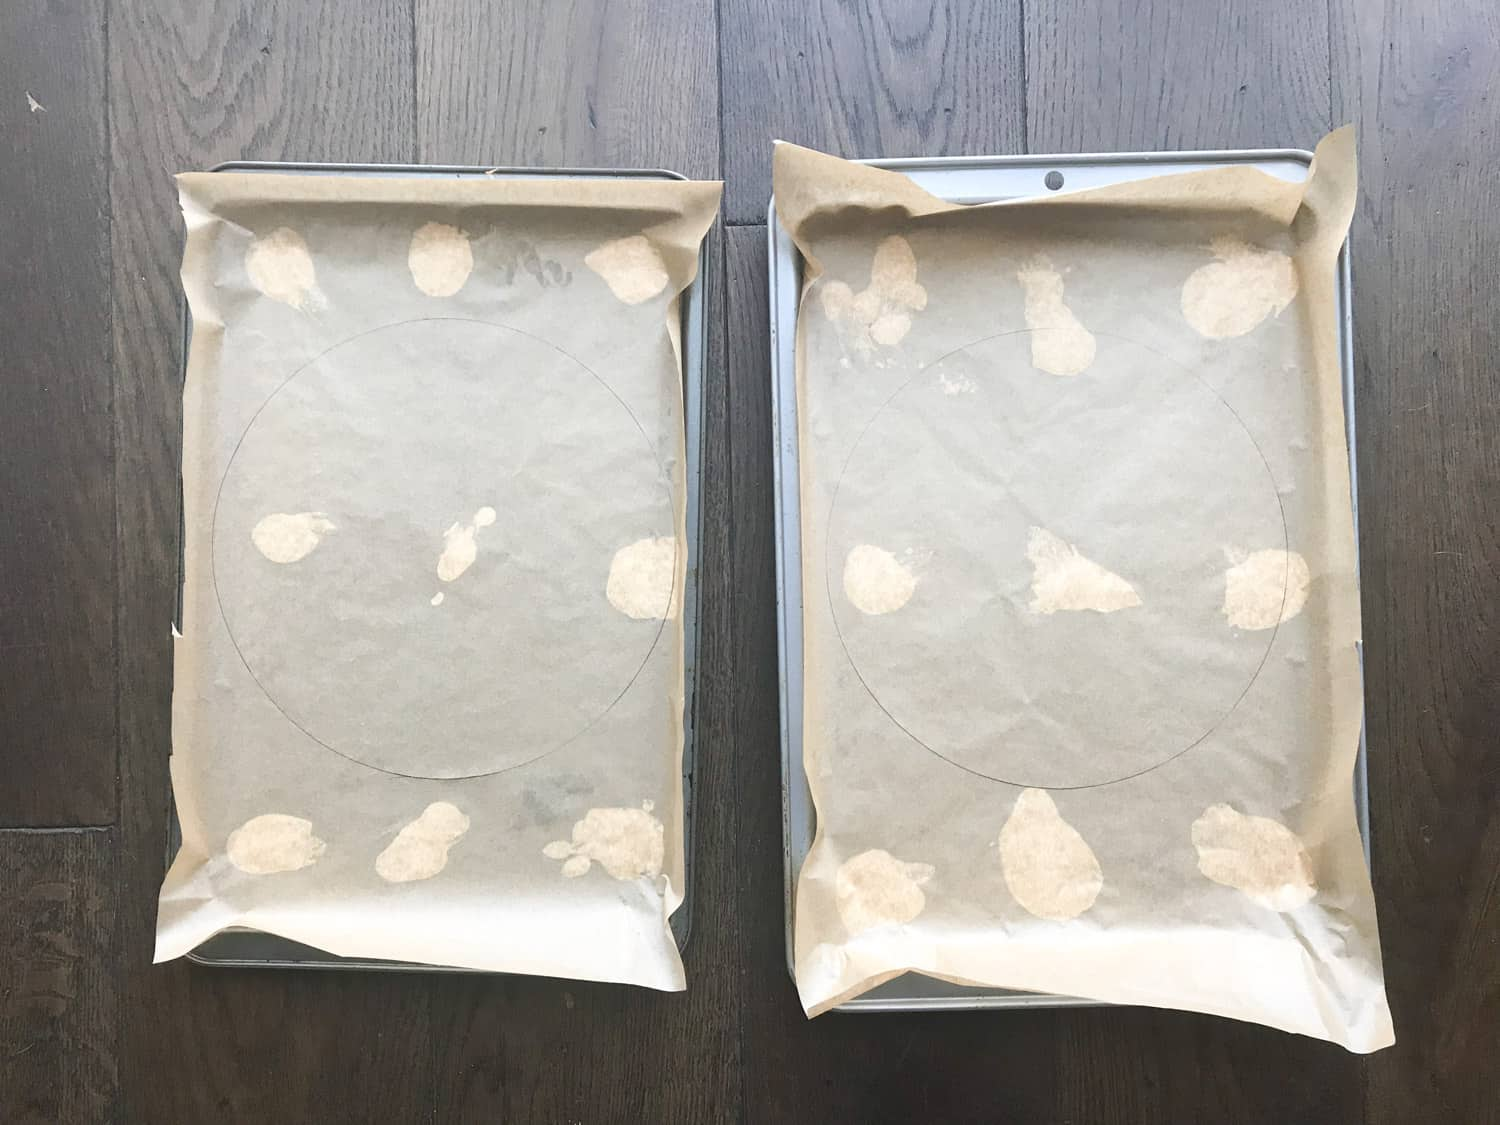 Baking trays with baking paper